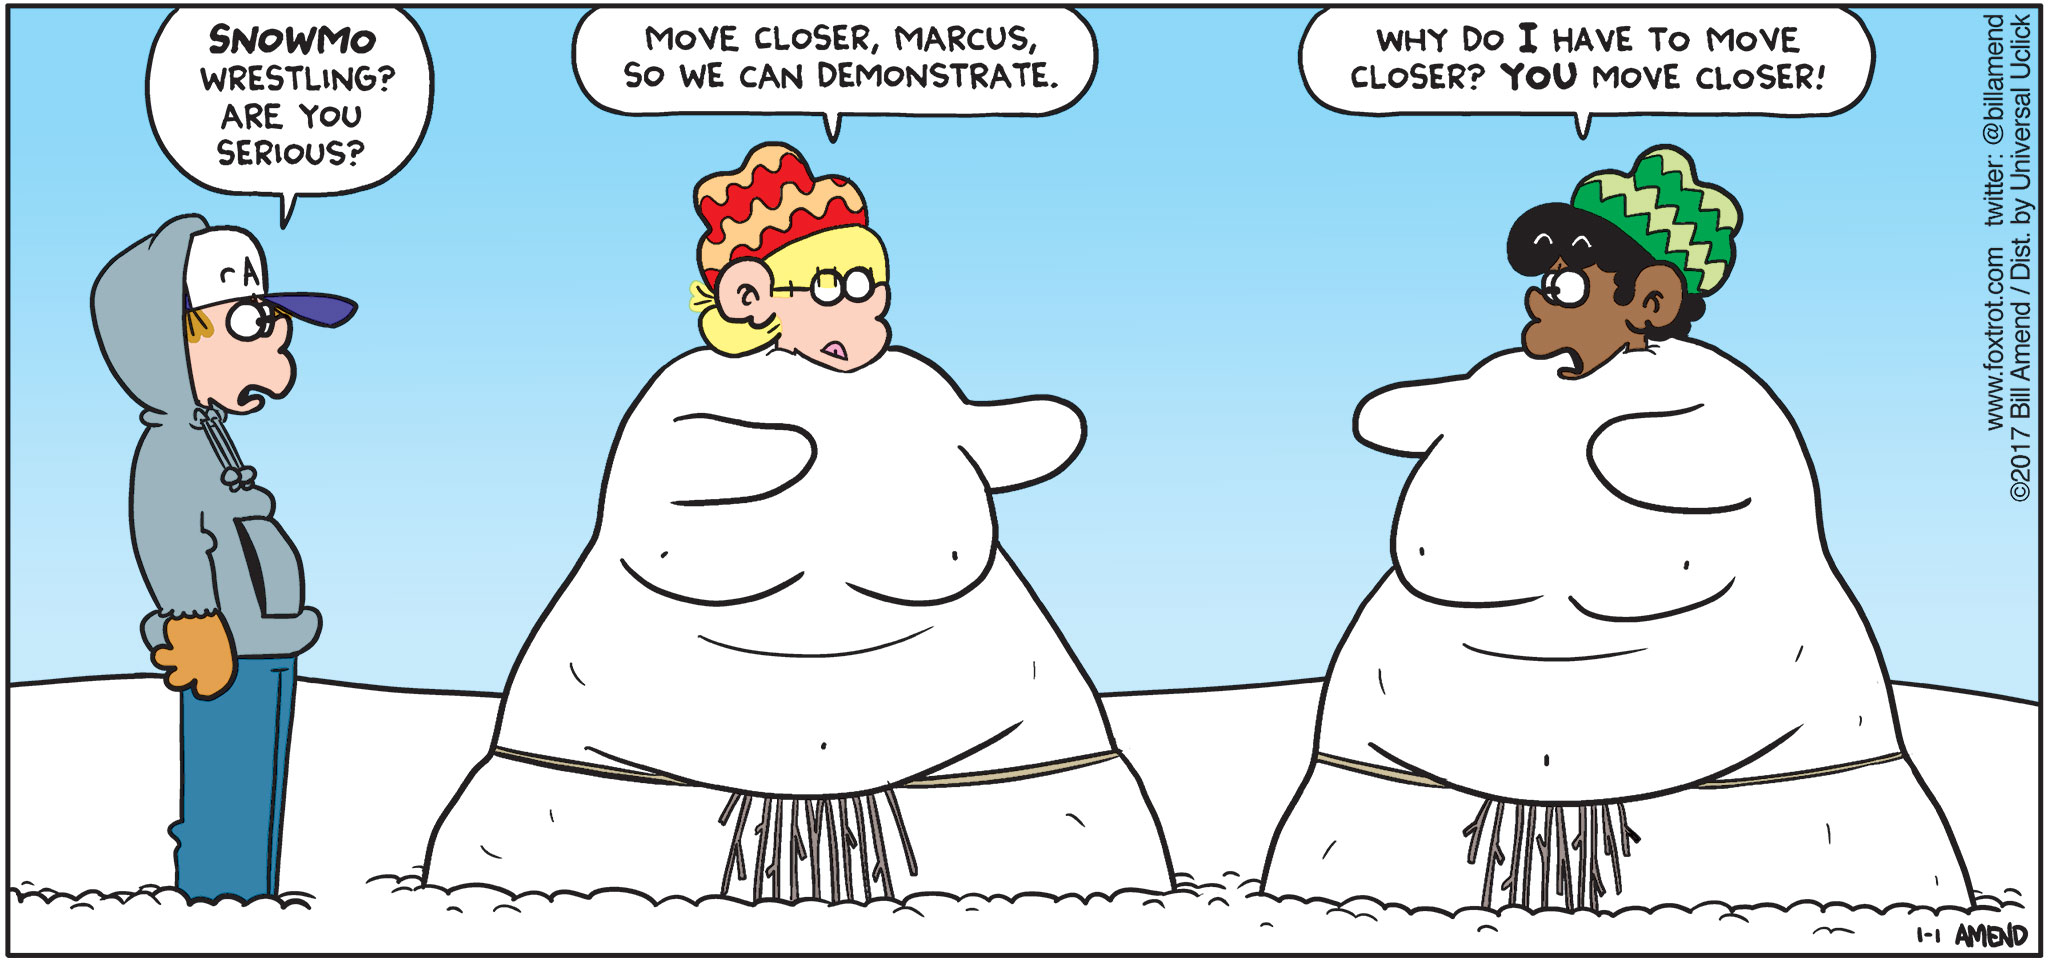 """FoxTrot by Bill Amend - """"Snowmo"""" published January 29, 2017 - Peter says: Snowmo wrestling? Are you serious? Jason says: Move closer, Marcus, so we can demonstrate. Marcus says: Why do I have to move closer? YOU move closer!"""